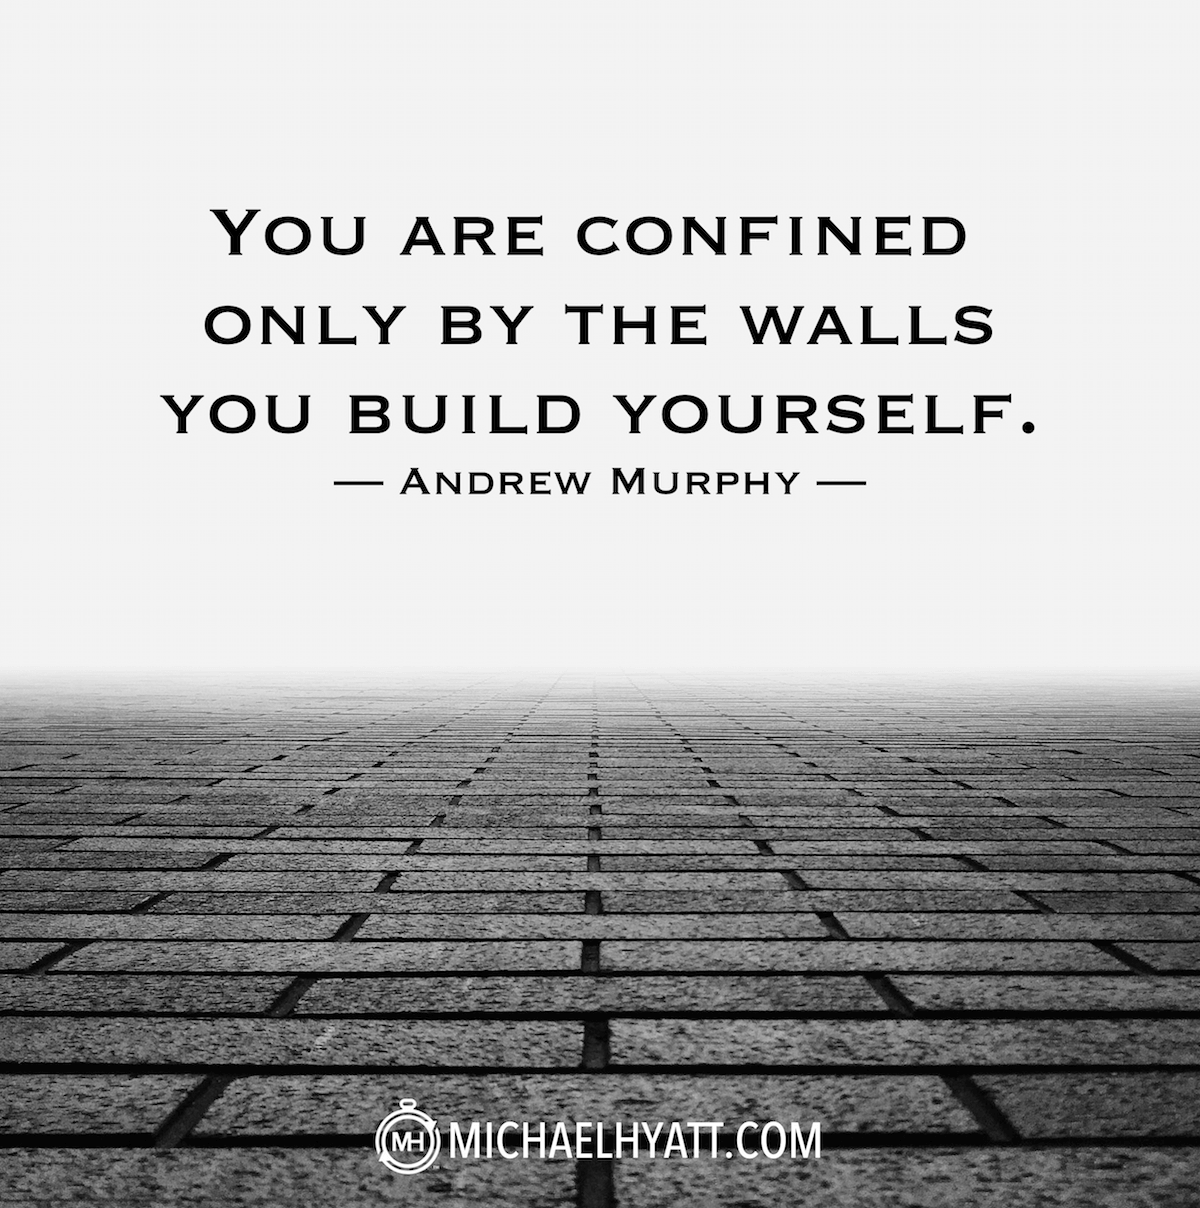 Monday Motivation | Dallas Interior Design | You are confined by the walls | Dream big